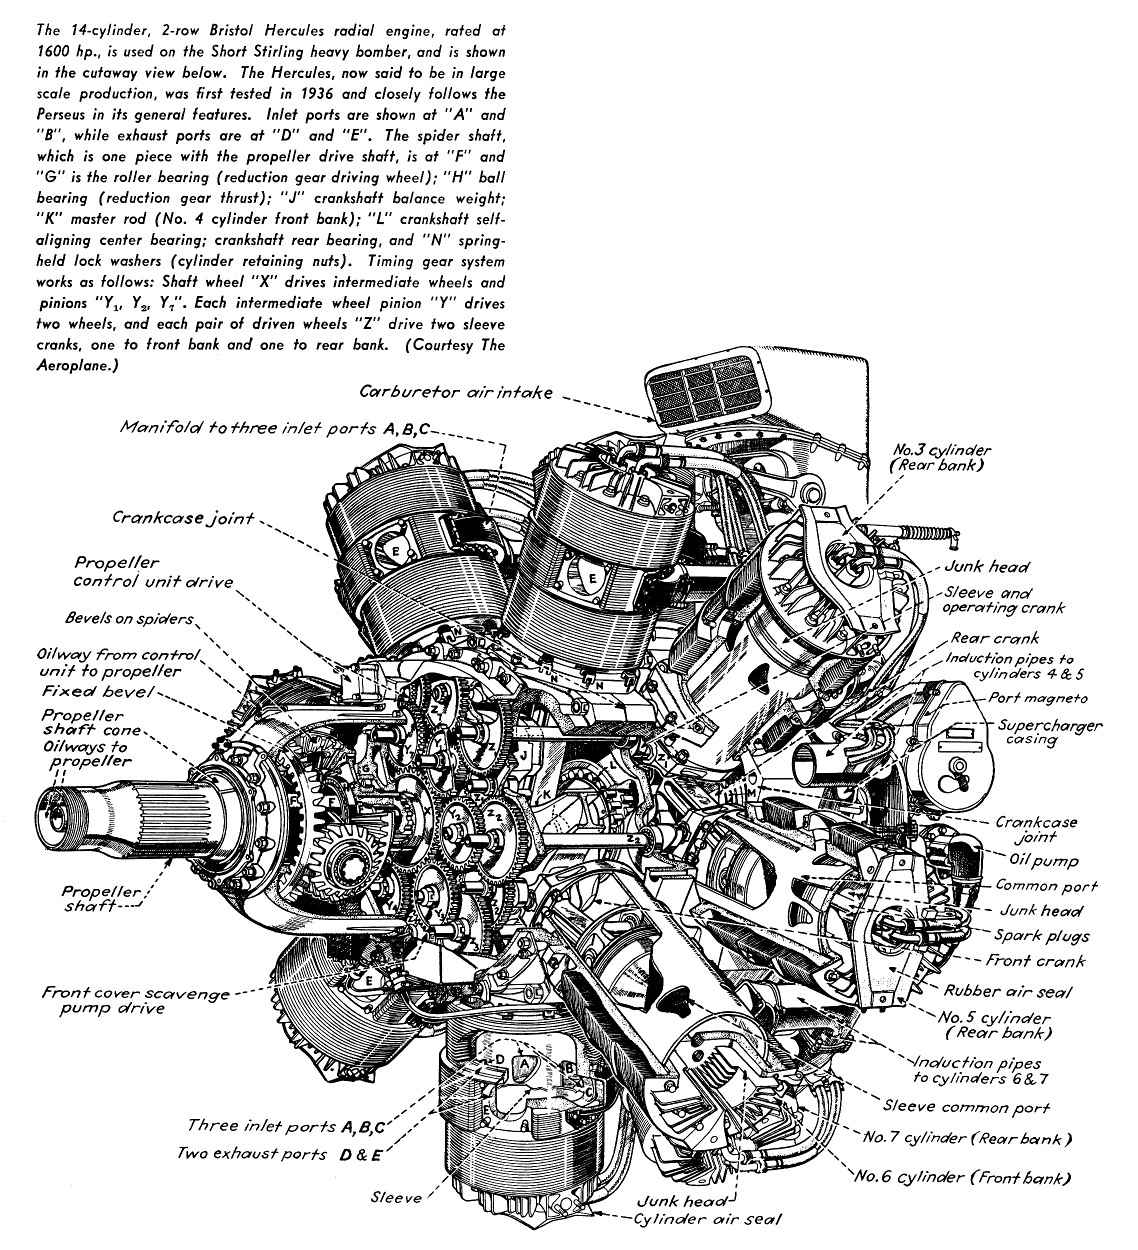 Ww2 Aircraft Cutaways